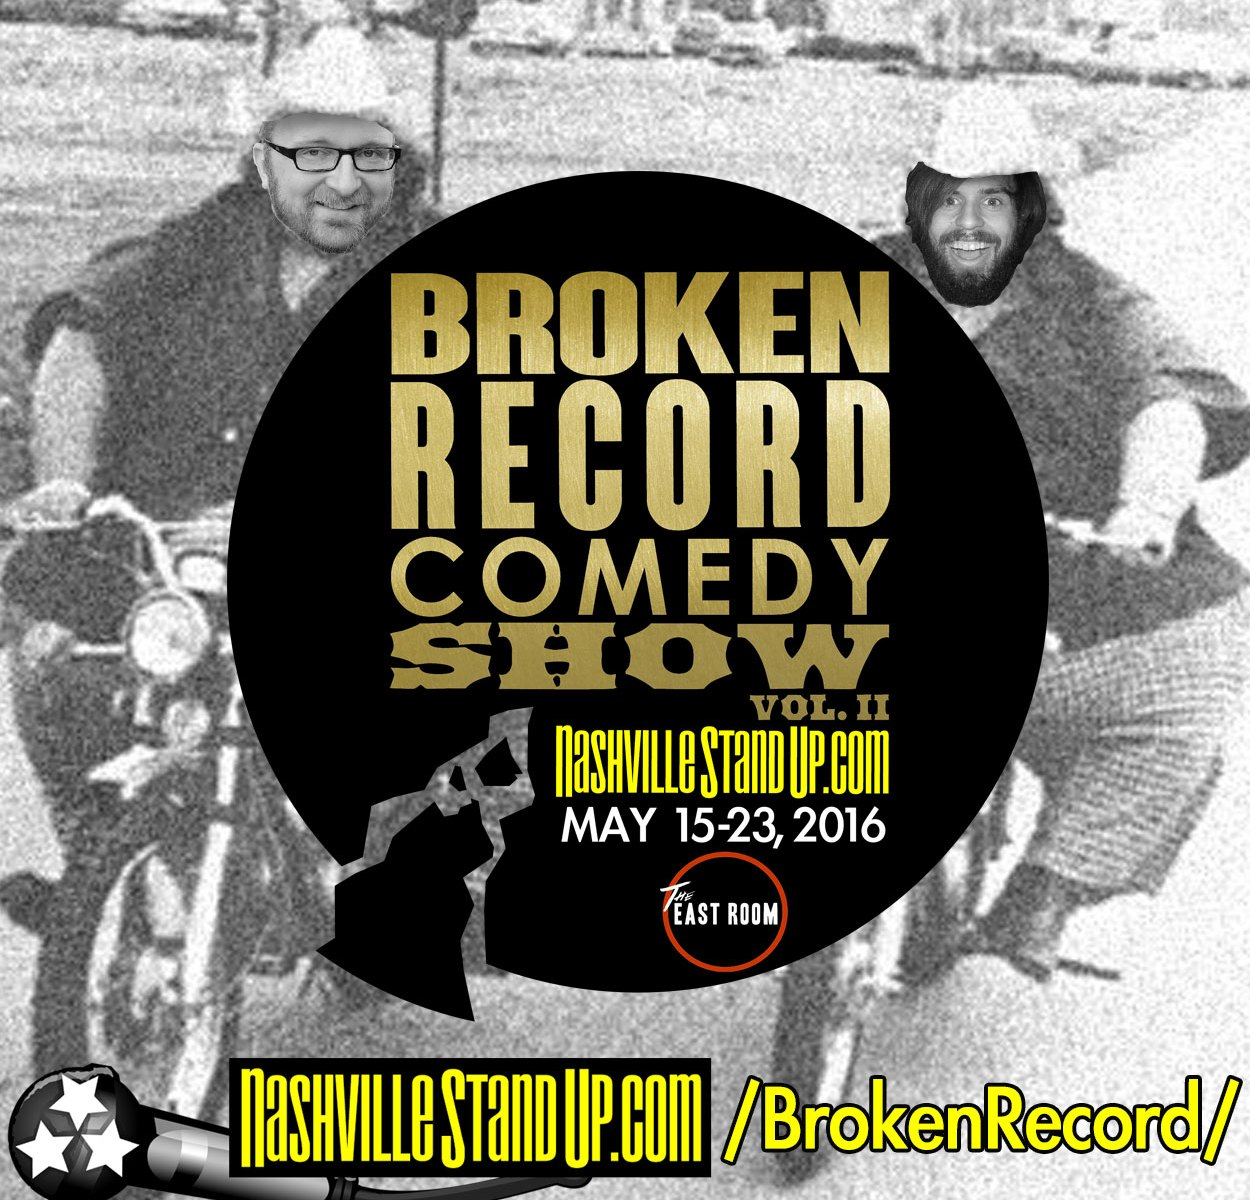 #BrokenRecordShow vol. 2 - May 15-23, 2016 at The East Room